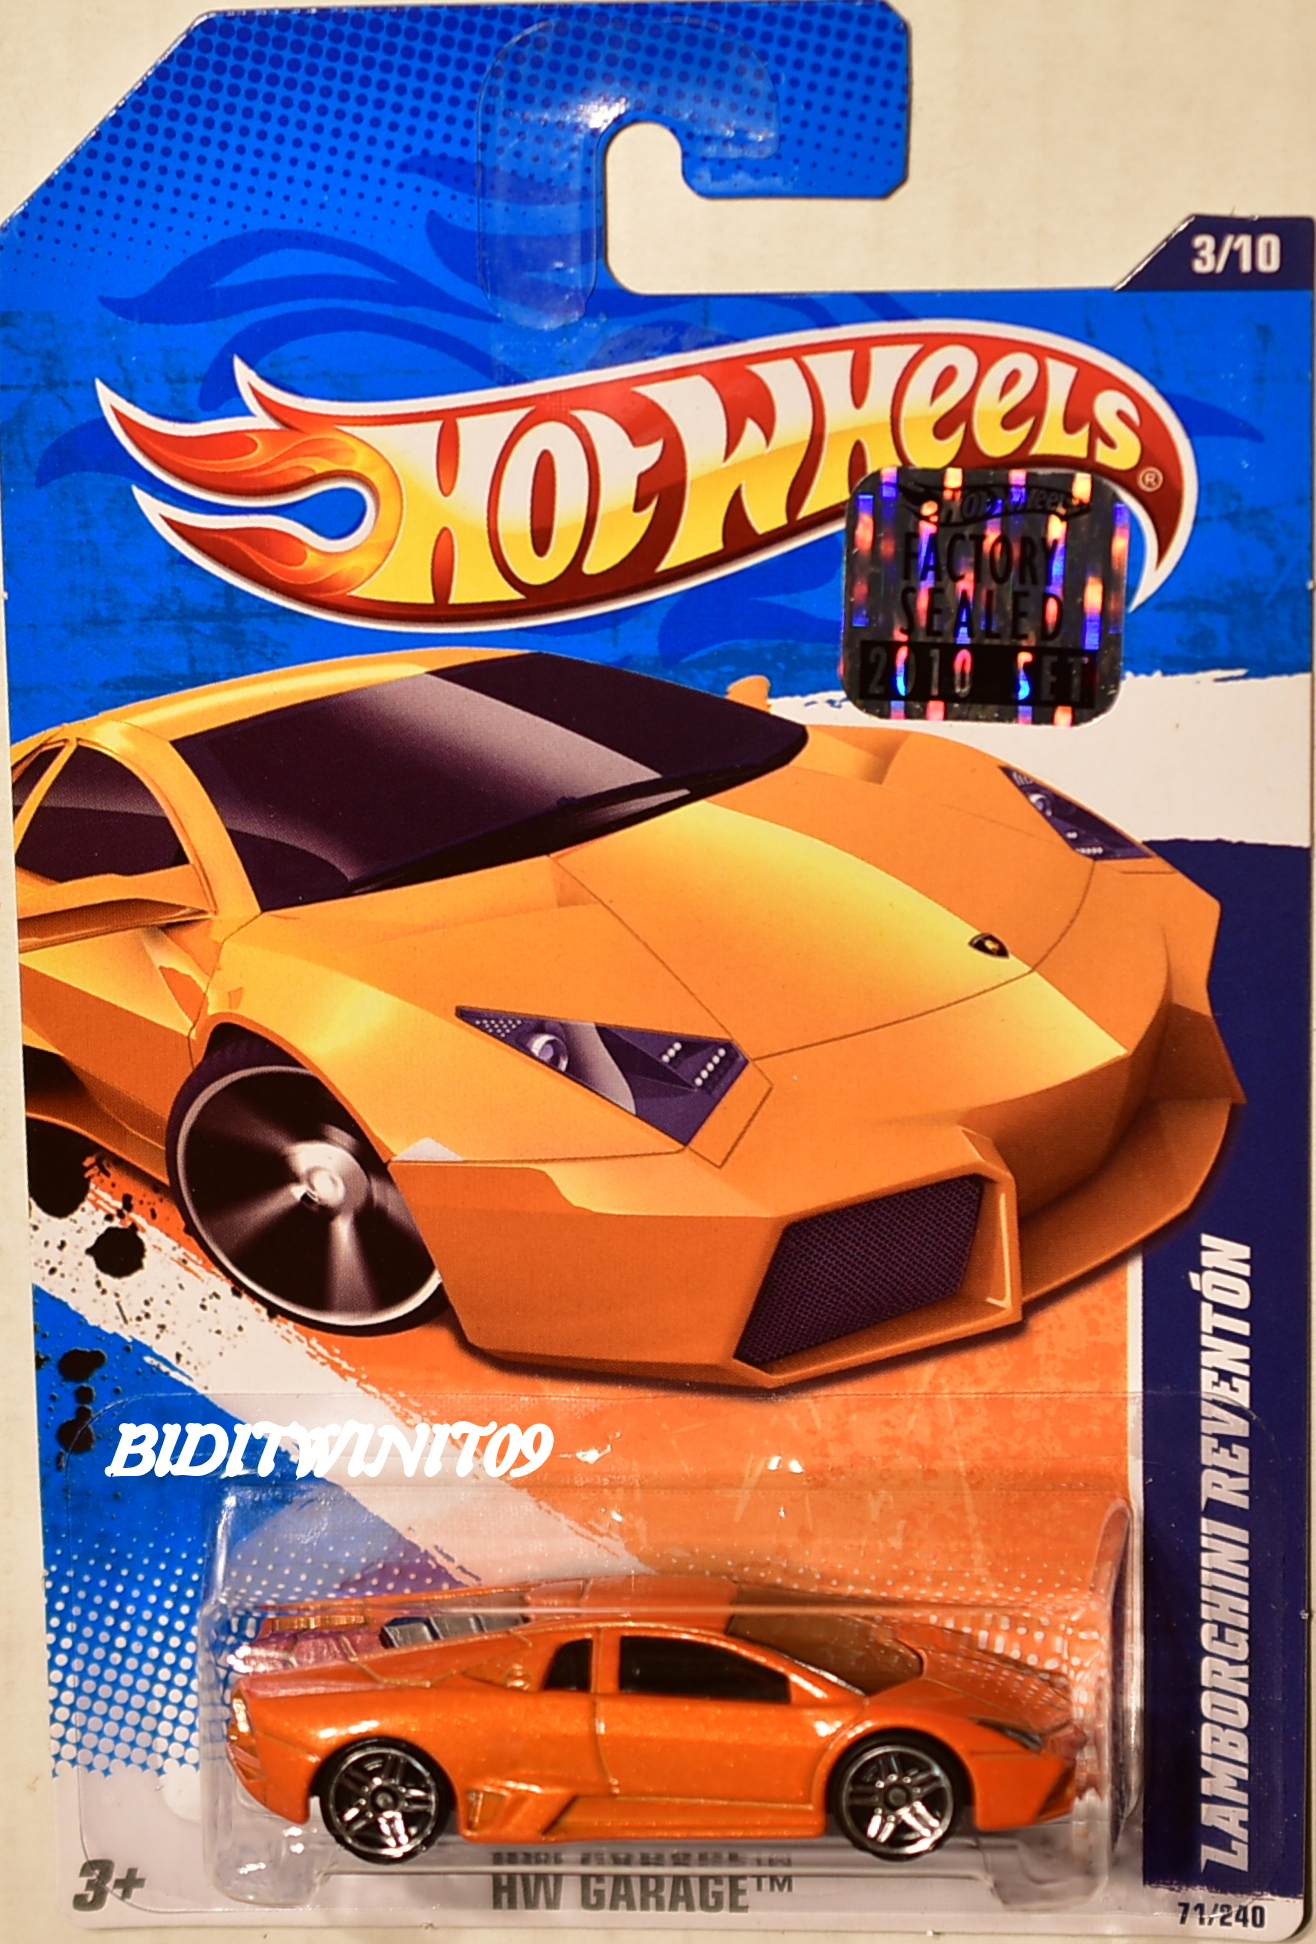 HOT WHEELS 2010 HW GARAGE LAMBORGHINI REVENTON #3/10 ORANGE FACTORY SEALED